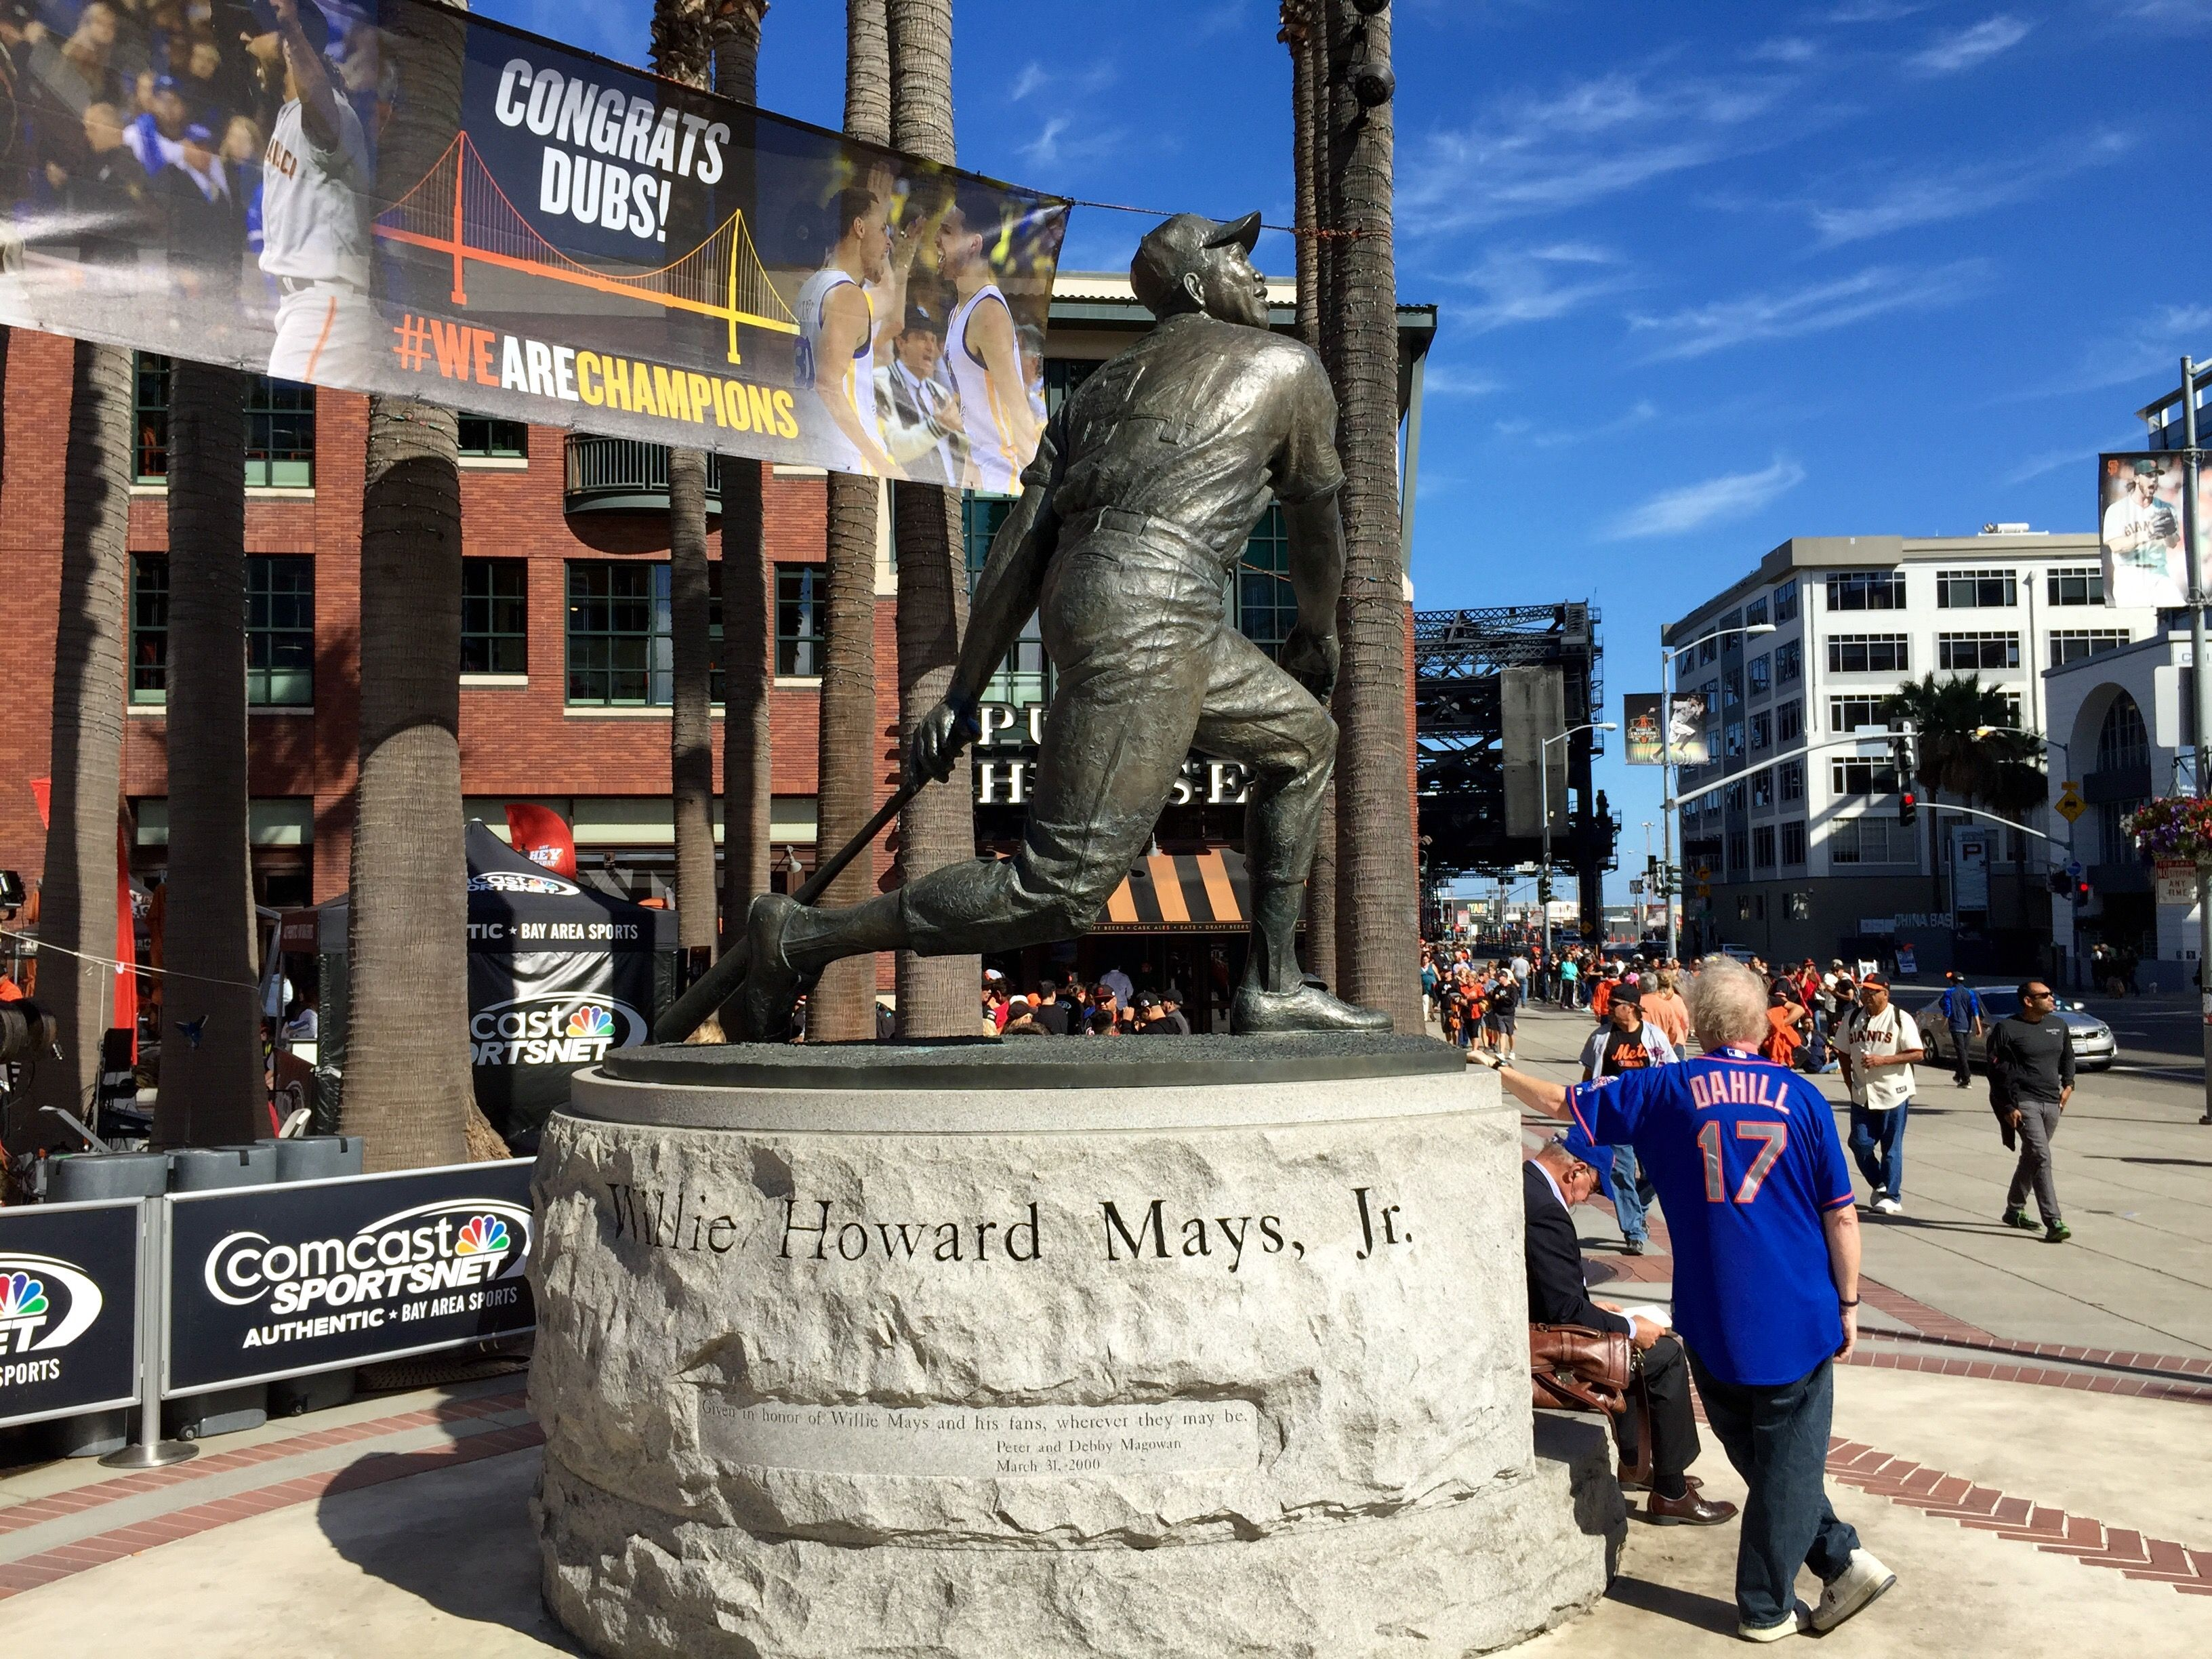 Statues of impactful players add build up excitement and home team pride before entering the ball park